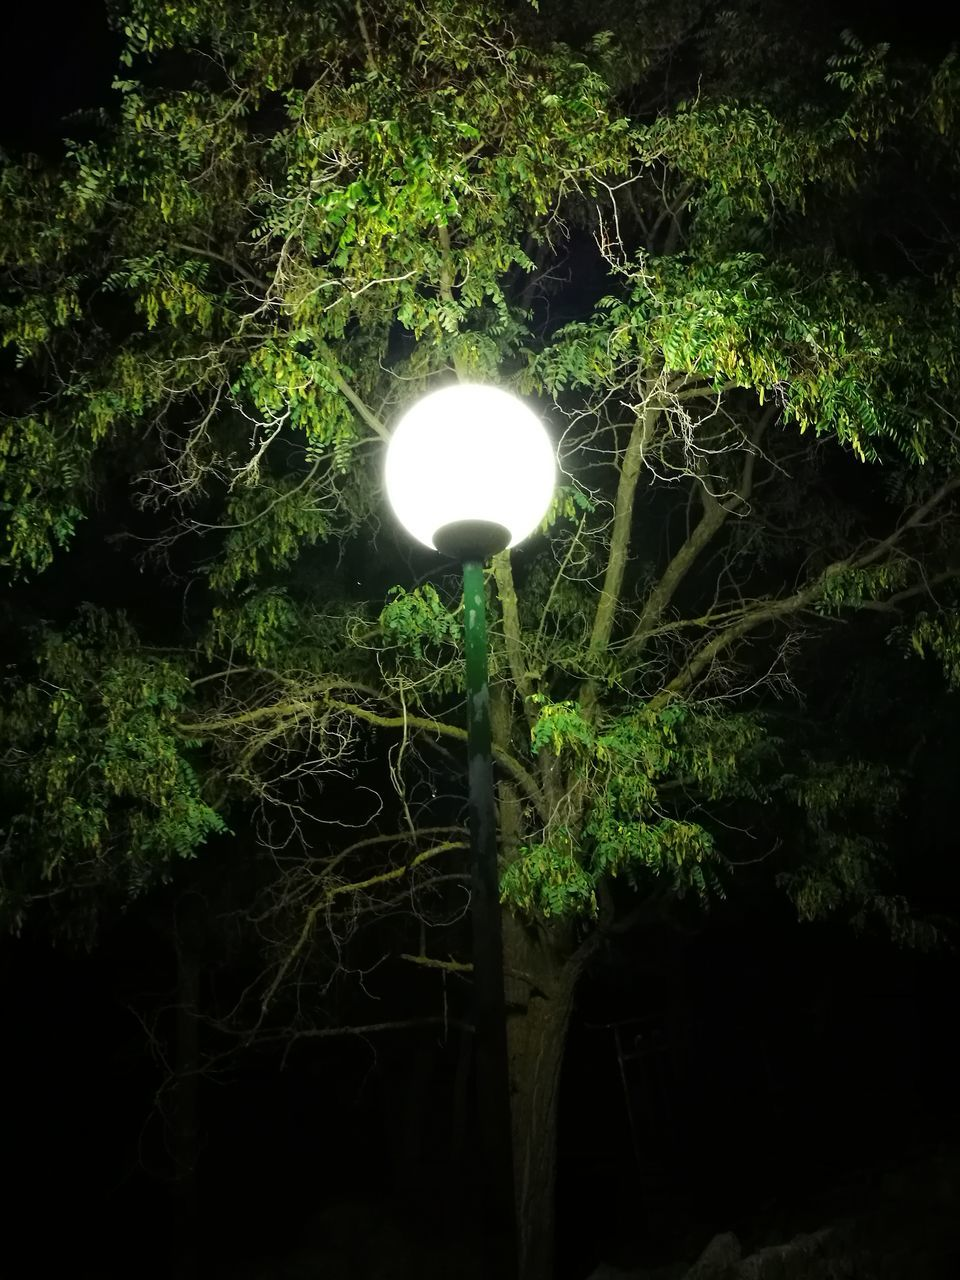 night, illuminated, growth, no people, electricity, plant, outdoors, tree, forest, green color, nature, leaf, beauty in nature, close-up